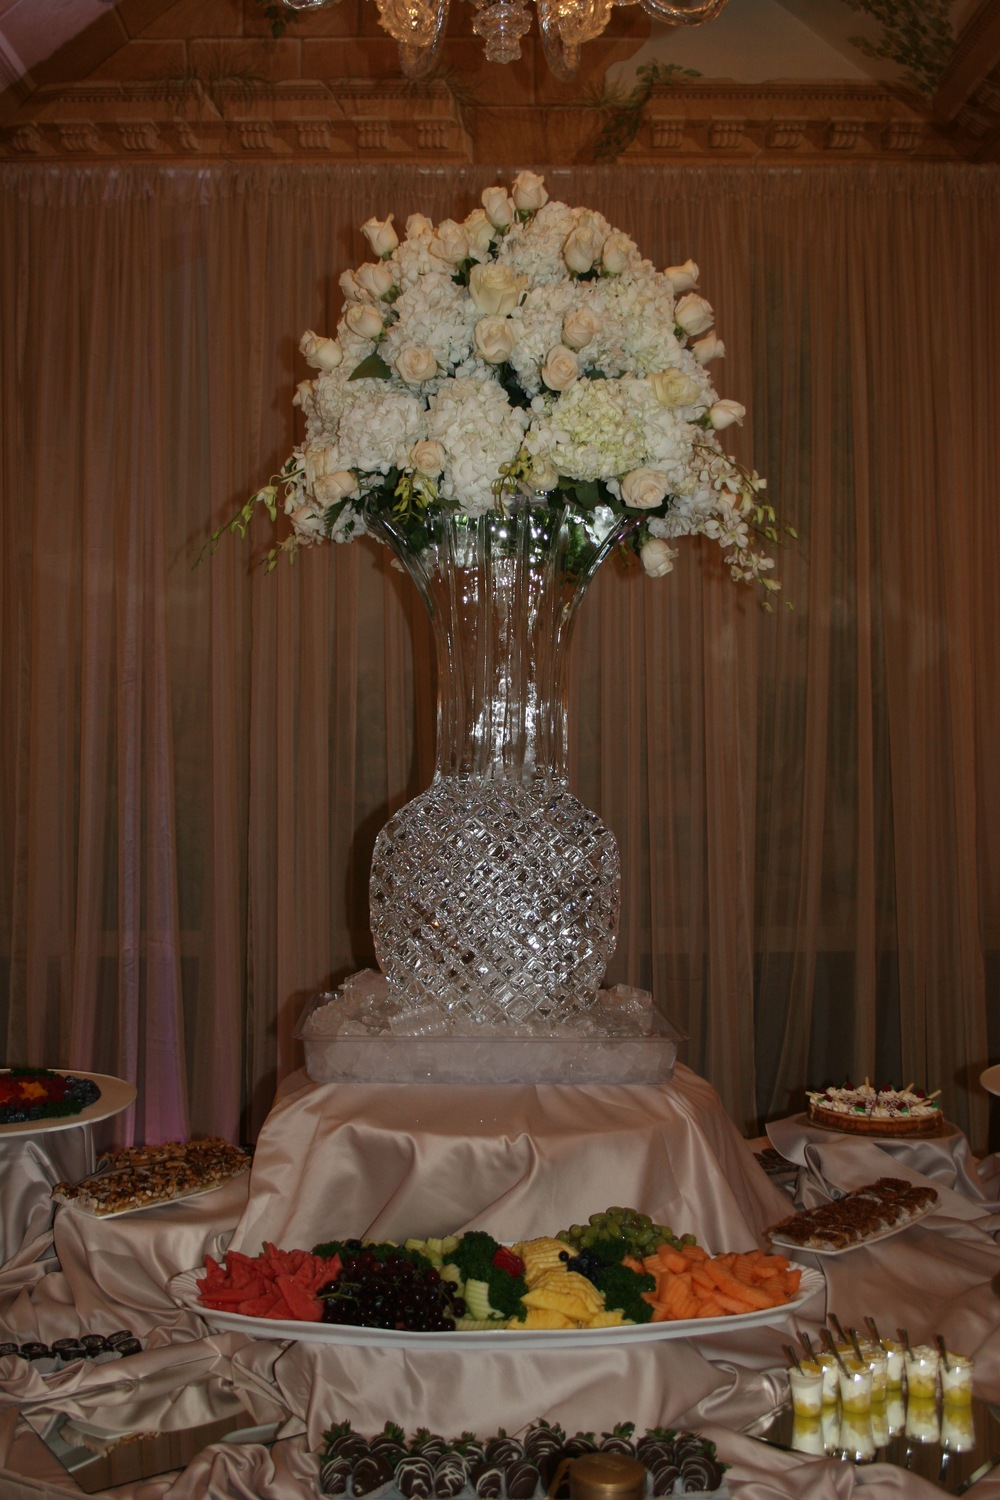 Crystal Cut Vase_ Ice Sculpture.jpg